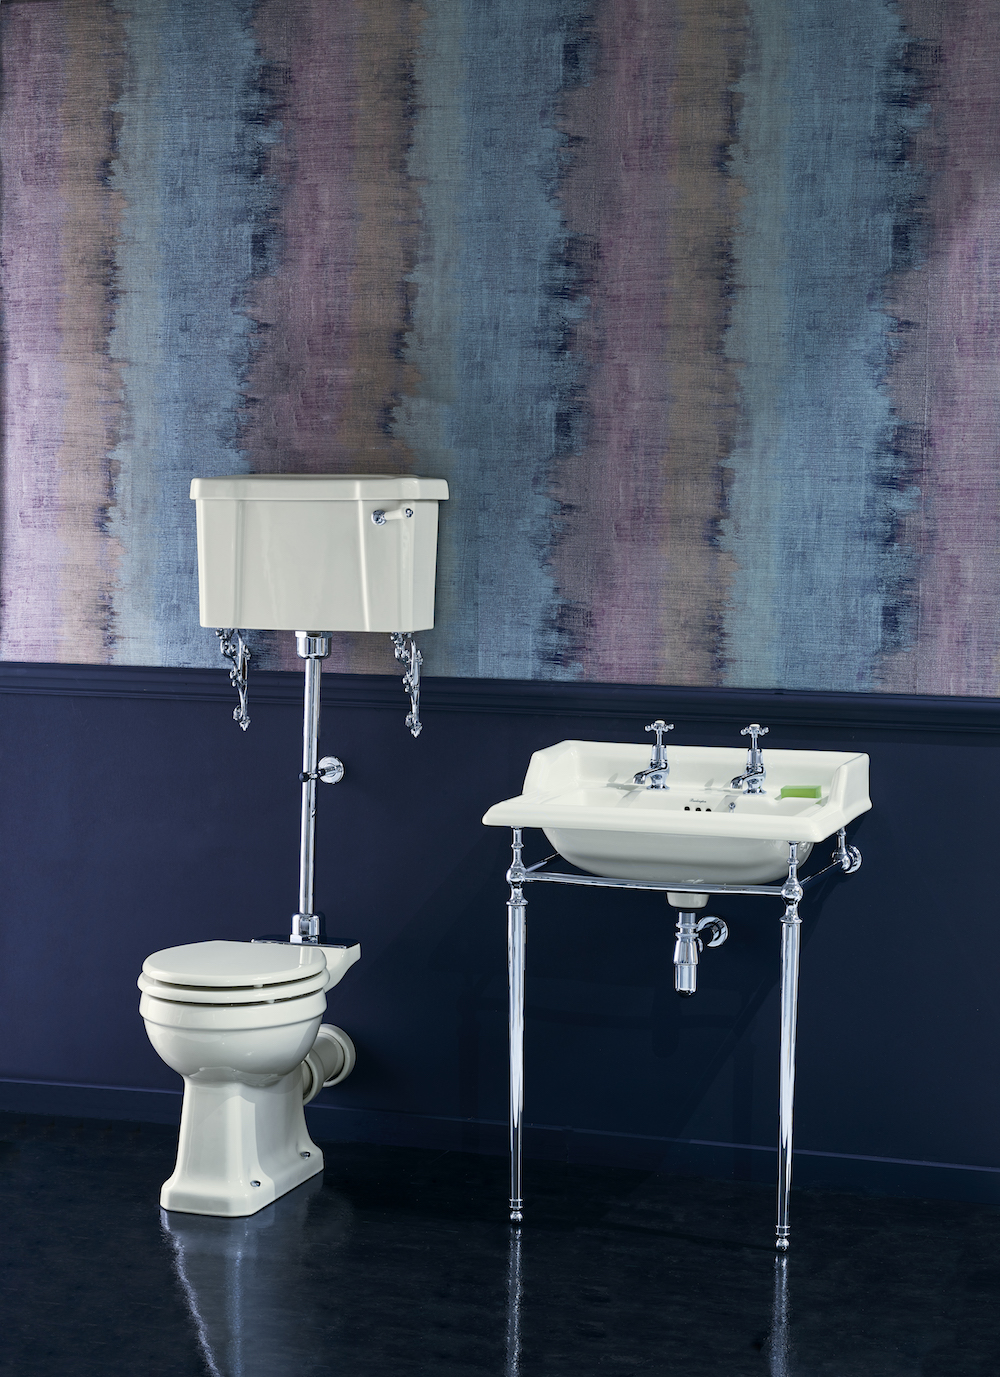 A white traditional toilet and basin